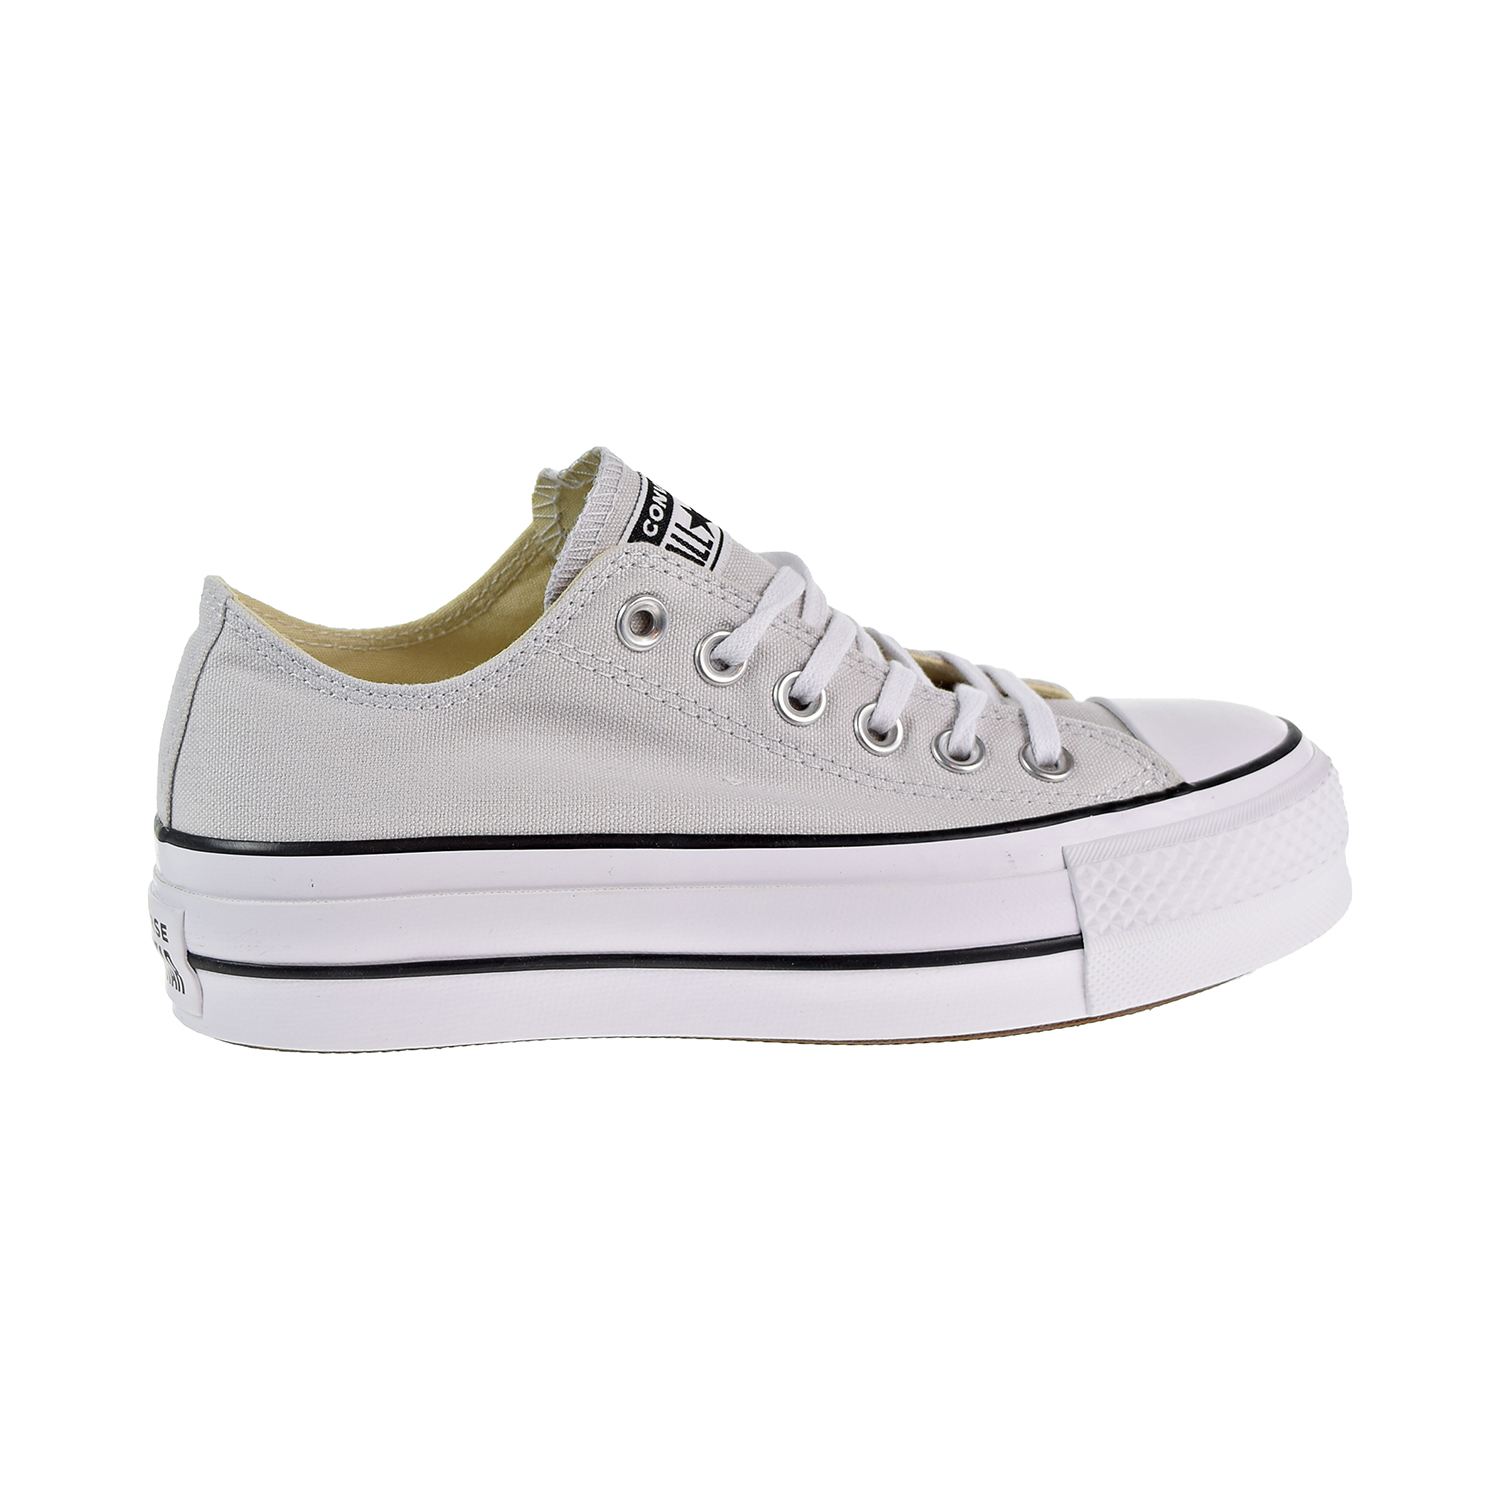 d4151d3cbb7e Converse Chuck Taylor All Star Lift Ox Women s Shoes Mouse White Black  560686c